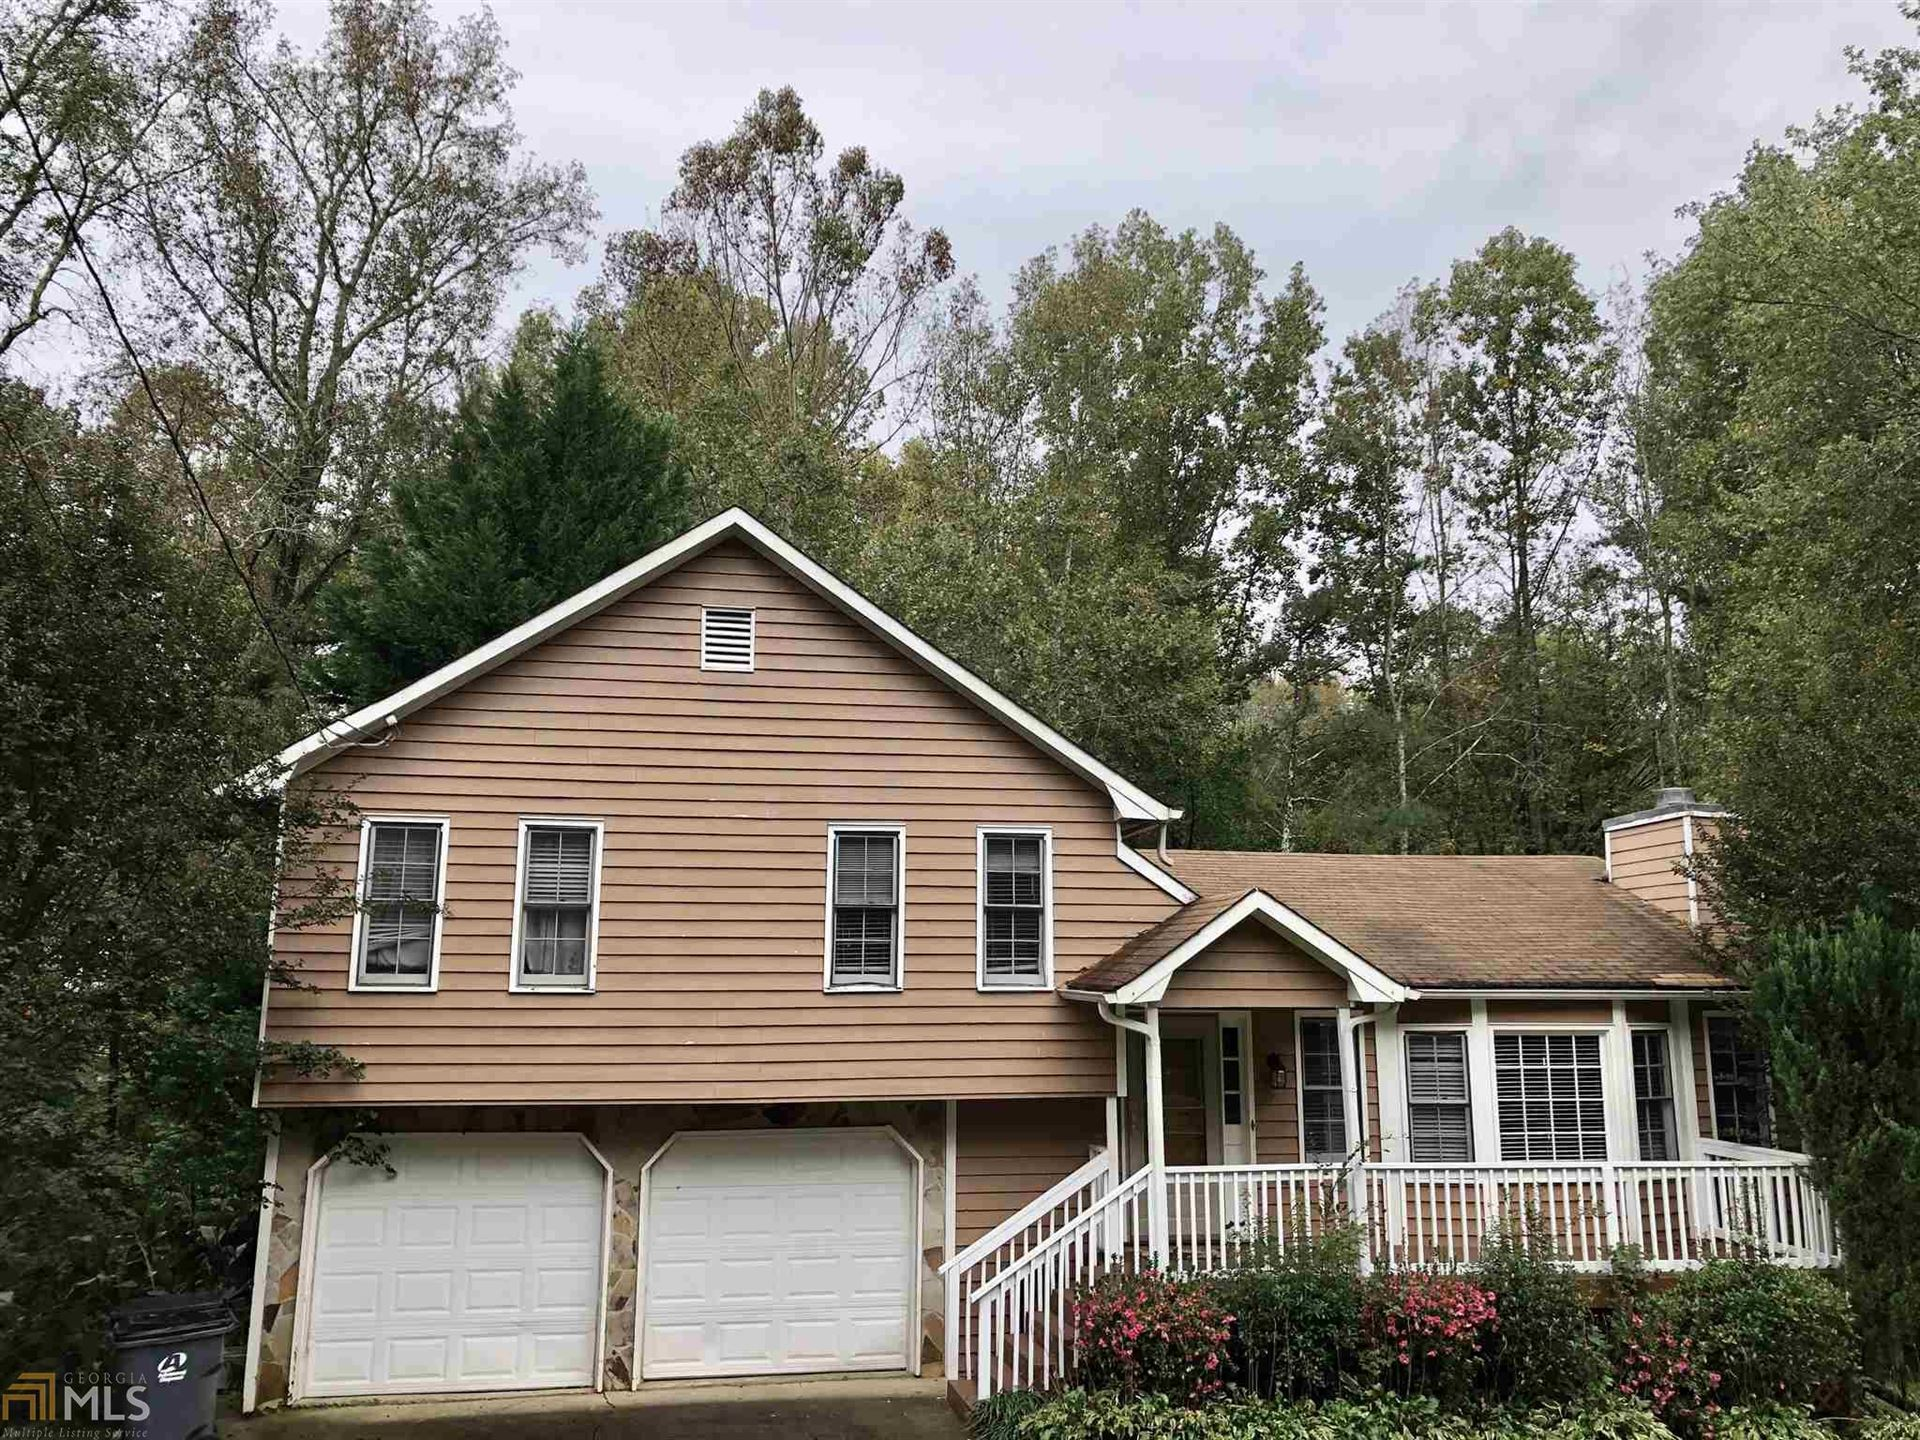 458 Hearth Pl, Lawrenceville, GA 30043 - MLS#: 8873986